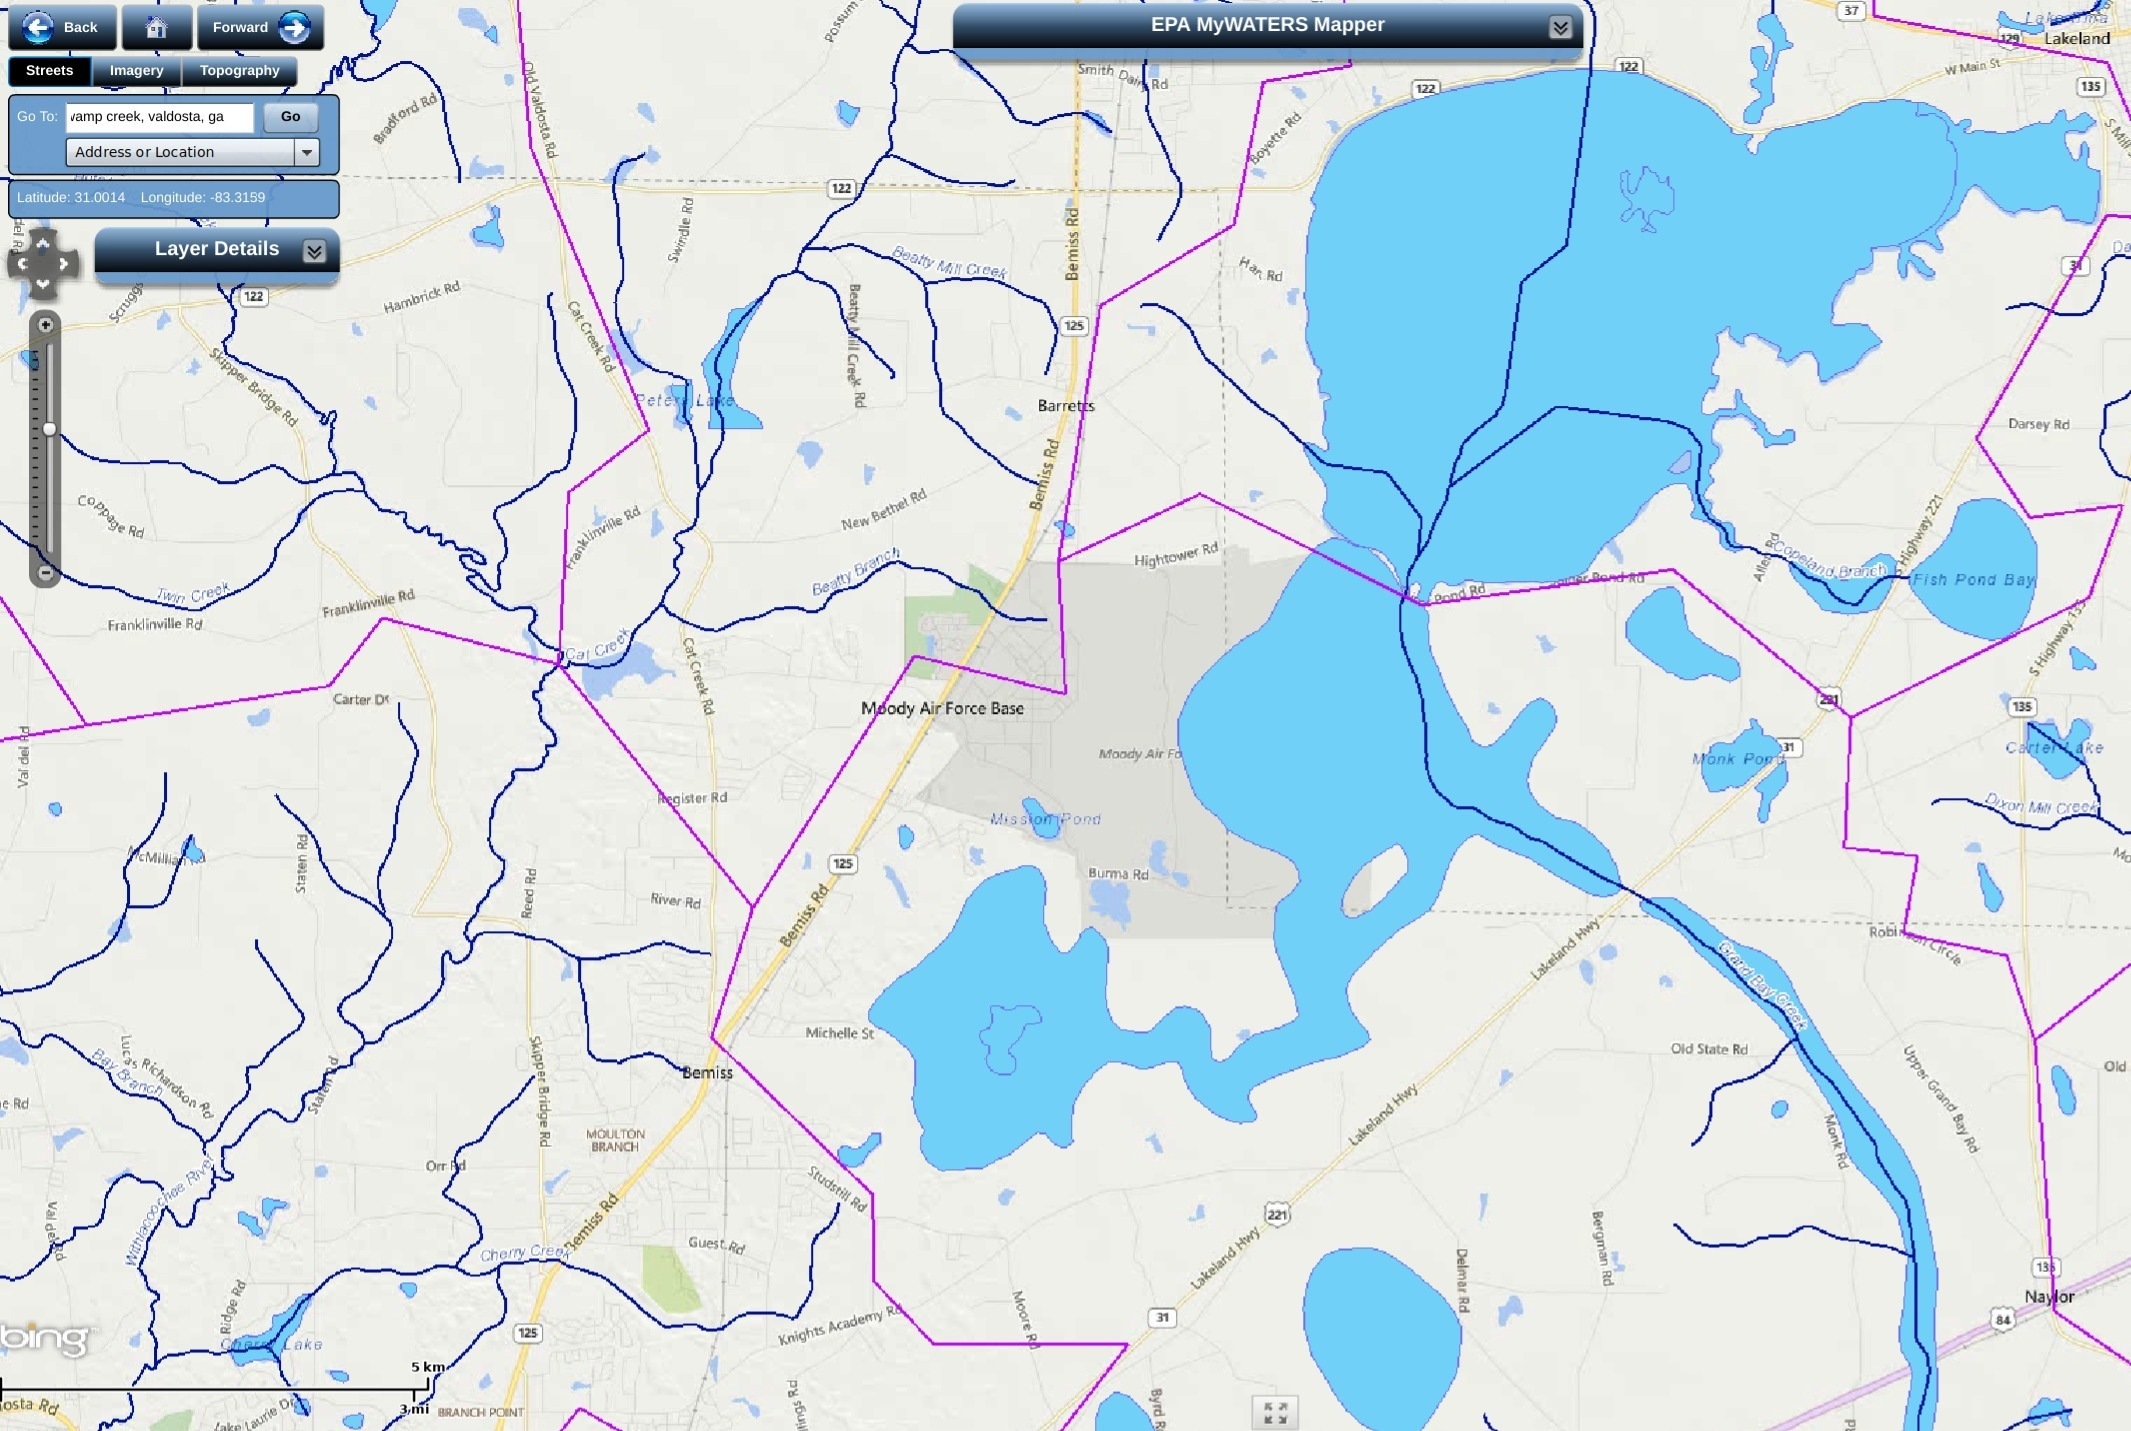 2131x1431 Watershed Divide between Withlacoochee and Alapaha Basins, in Cherry Creek and Grand Bay Creek, by John S. Quarterman, for WWALS.net, 12 September 2017